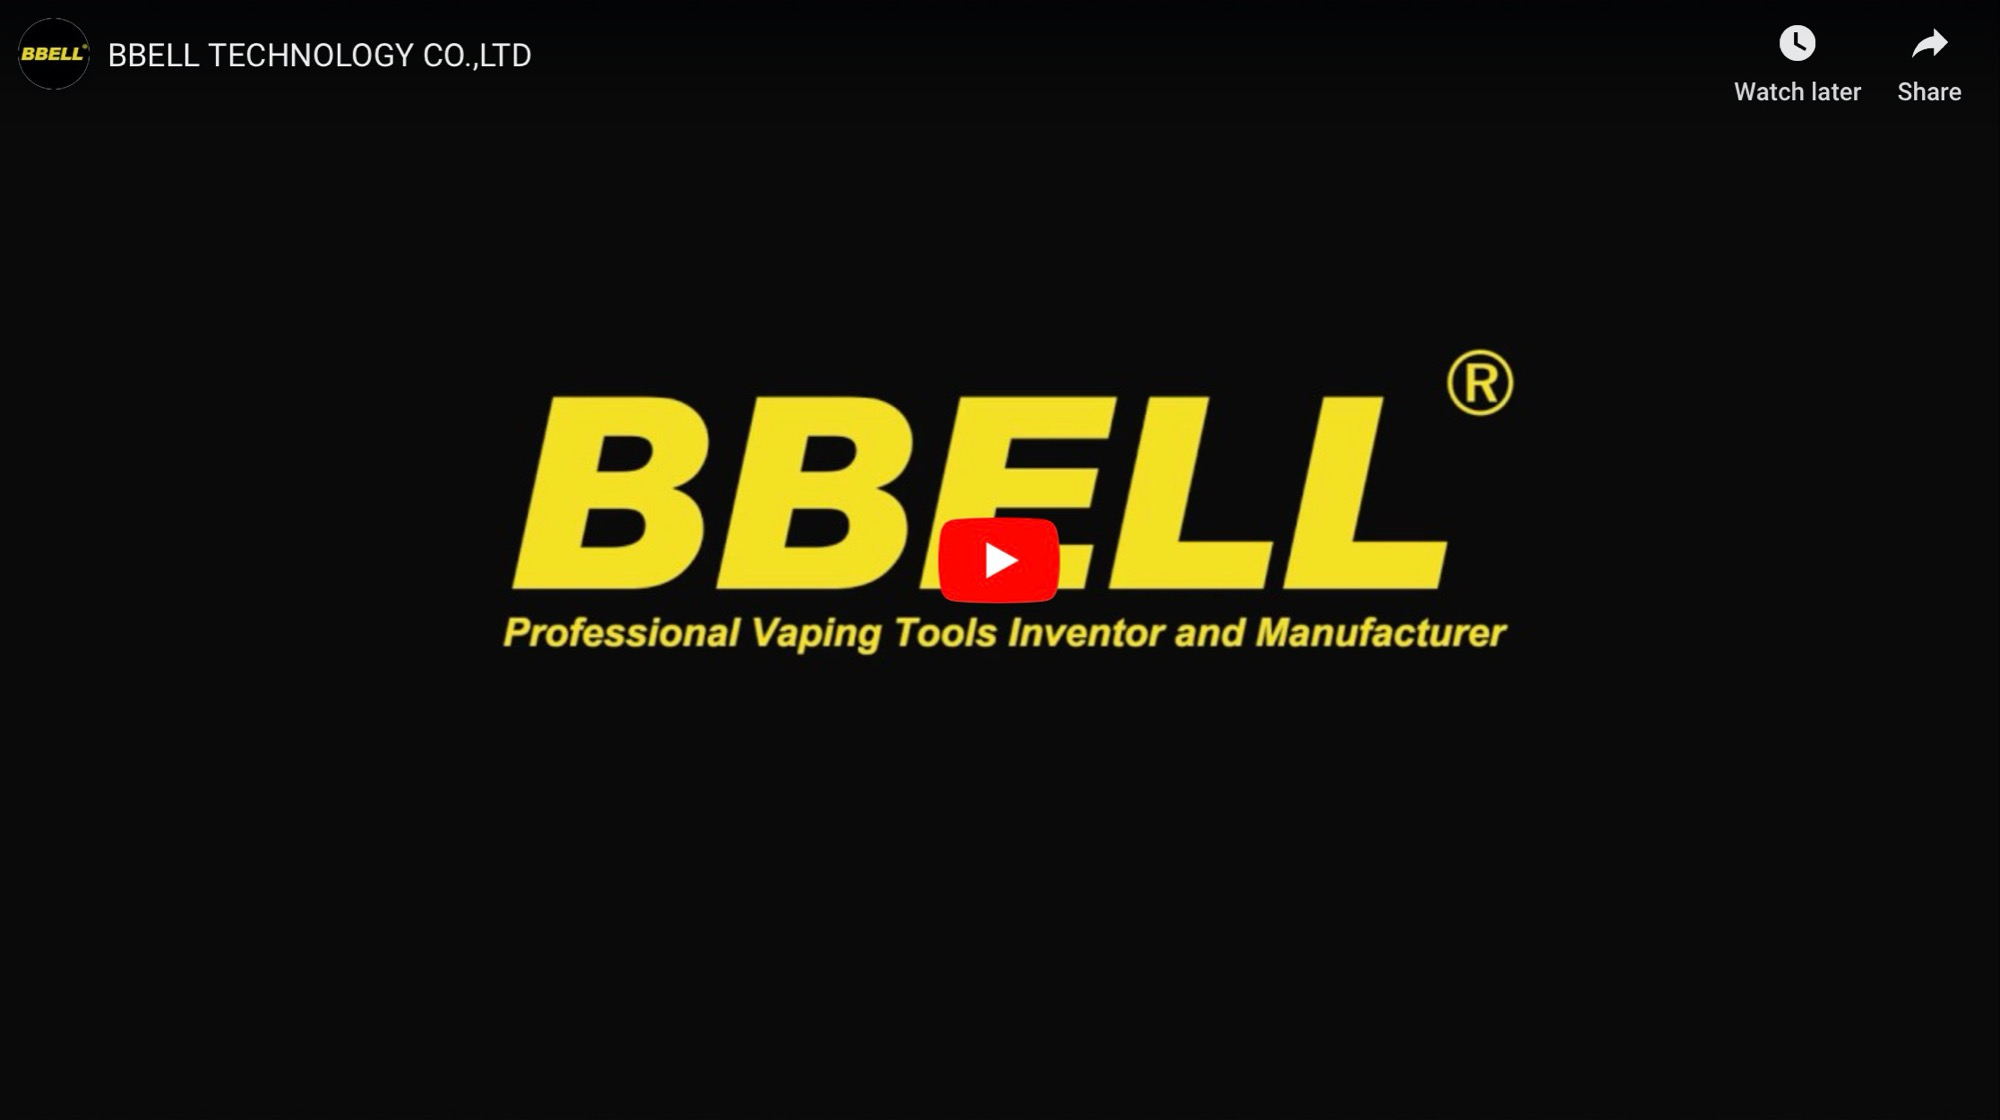 BBELL TECHNOLOGY CO.,LTD